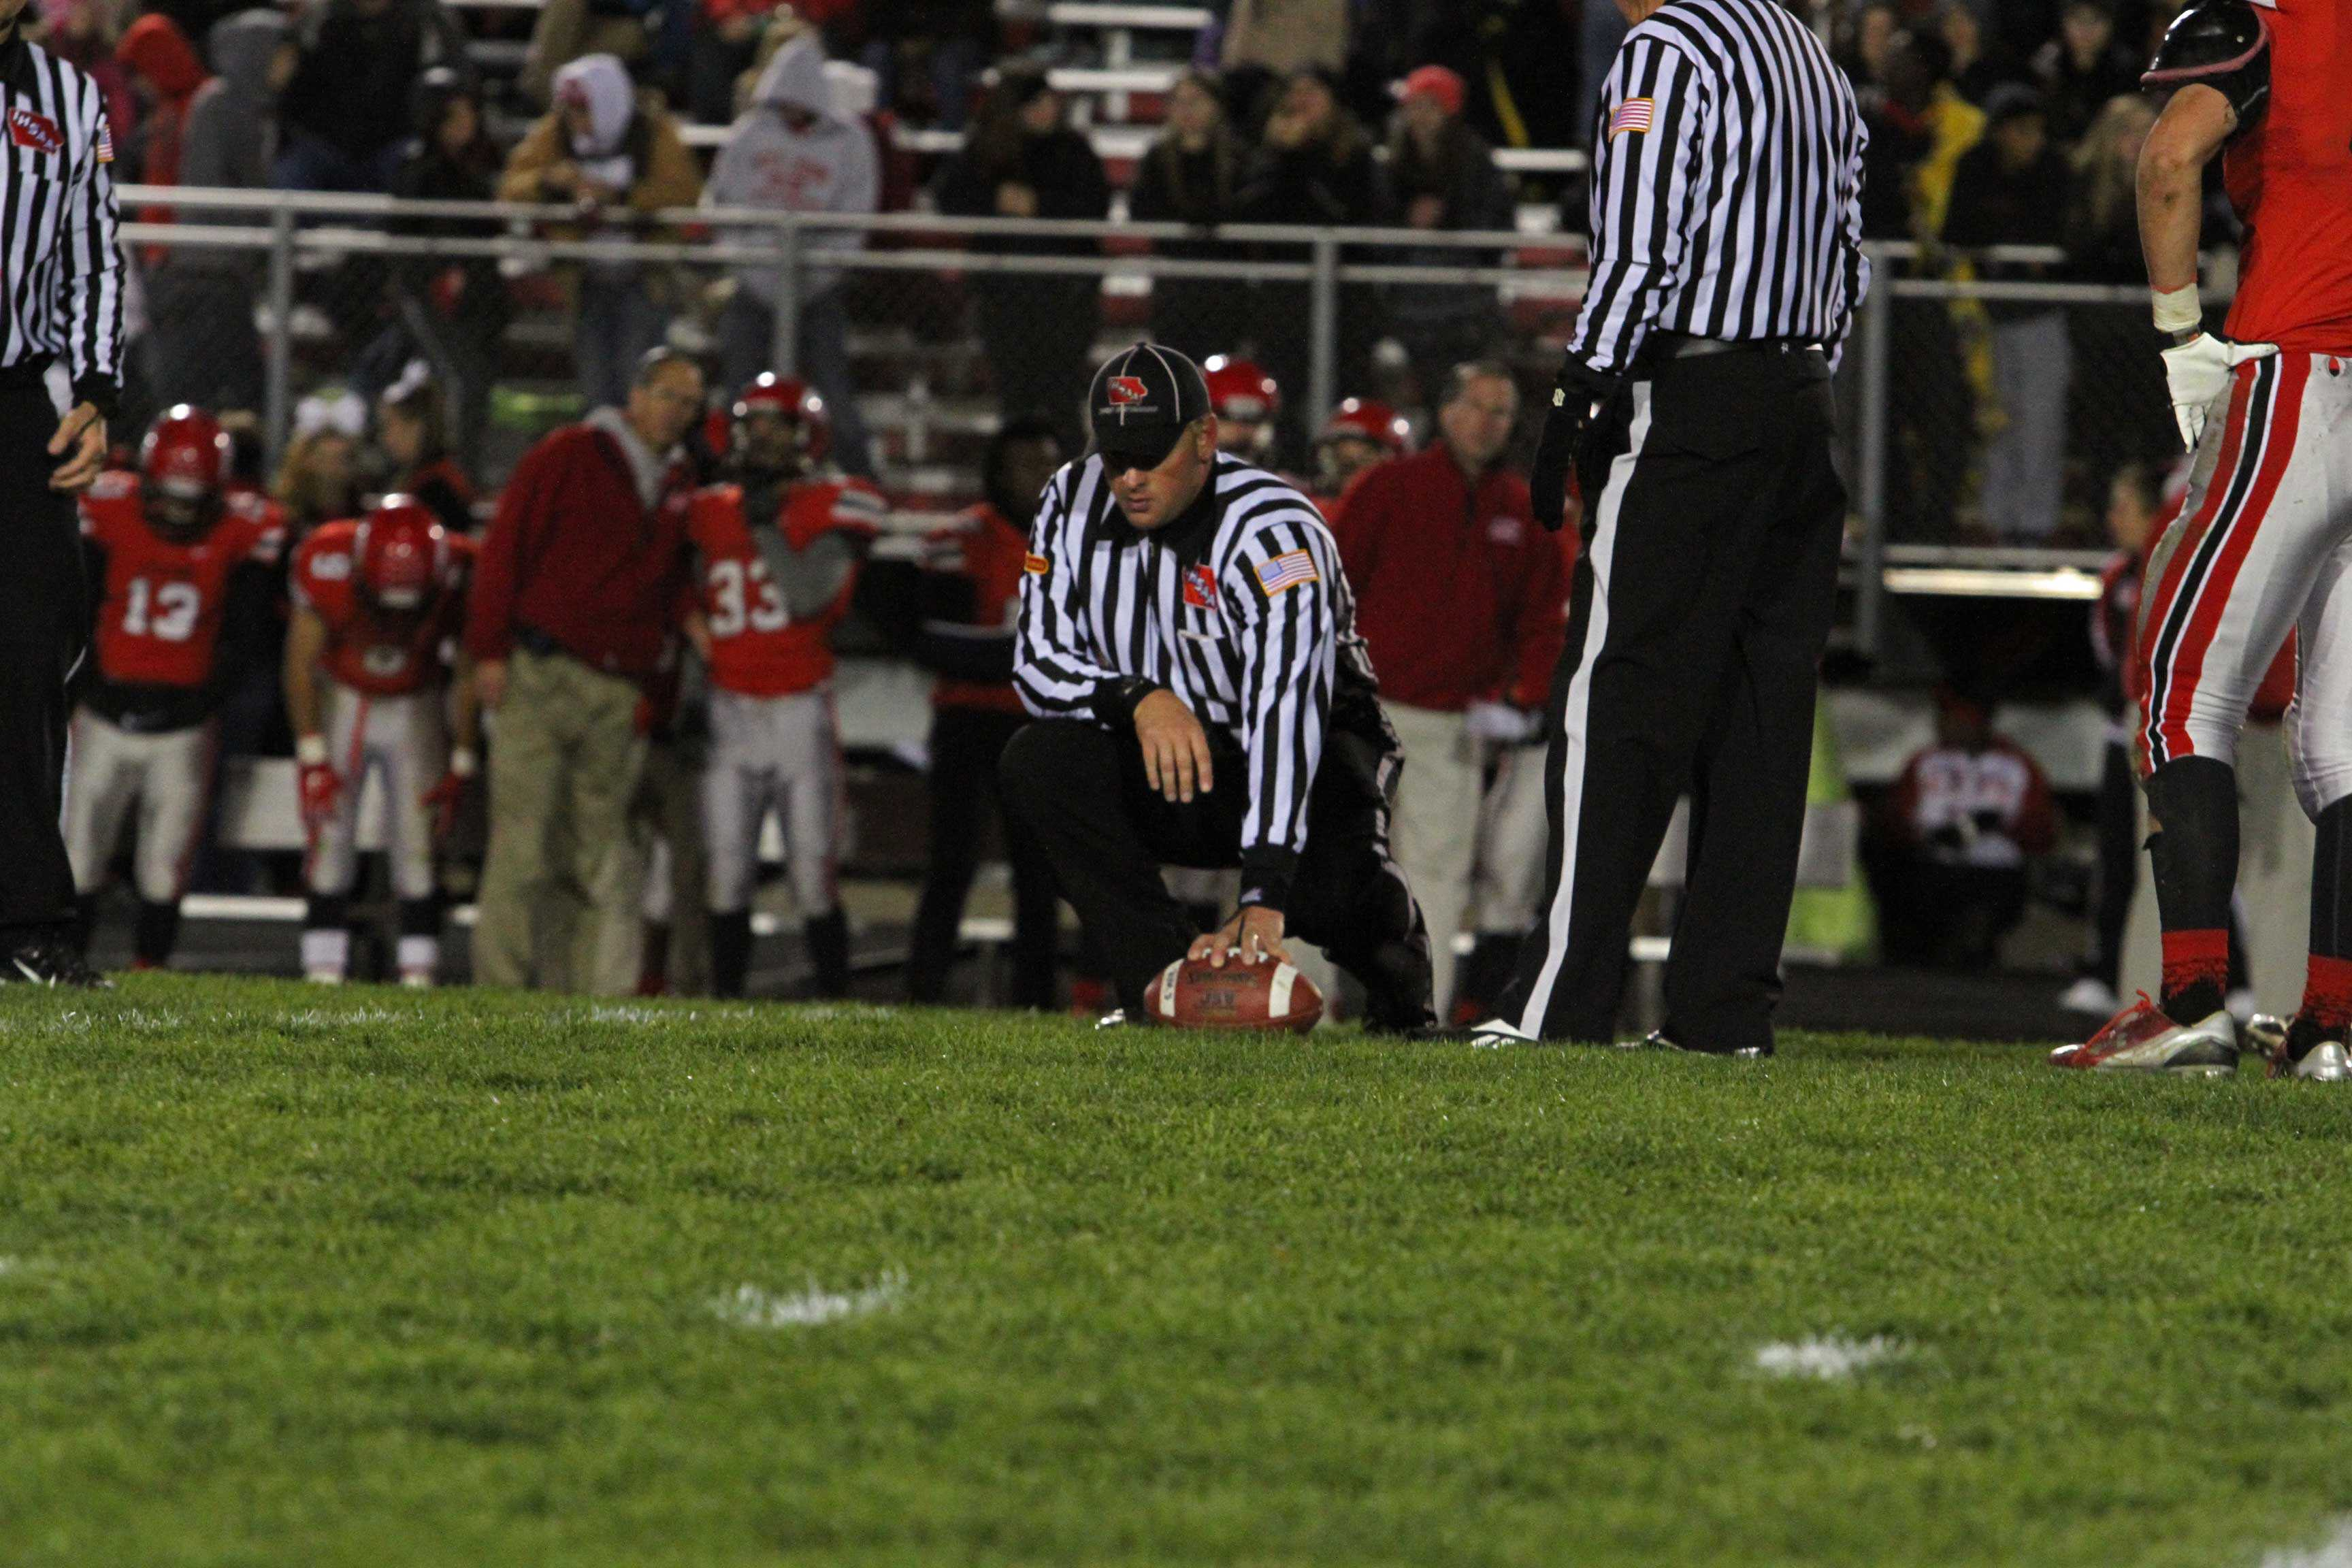 The+City+High+sideline+watches+intently+as+the+officials+prepare+to+spot+Washington%27s+ball+on+second+down.